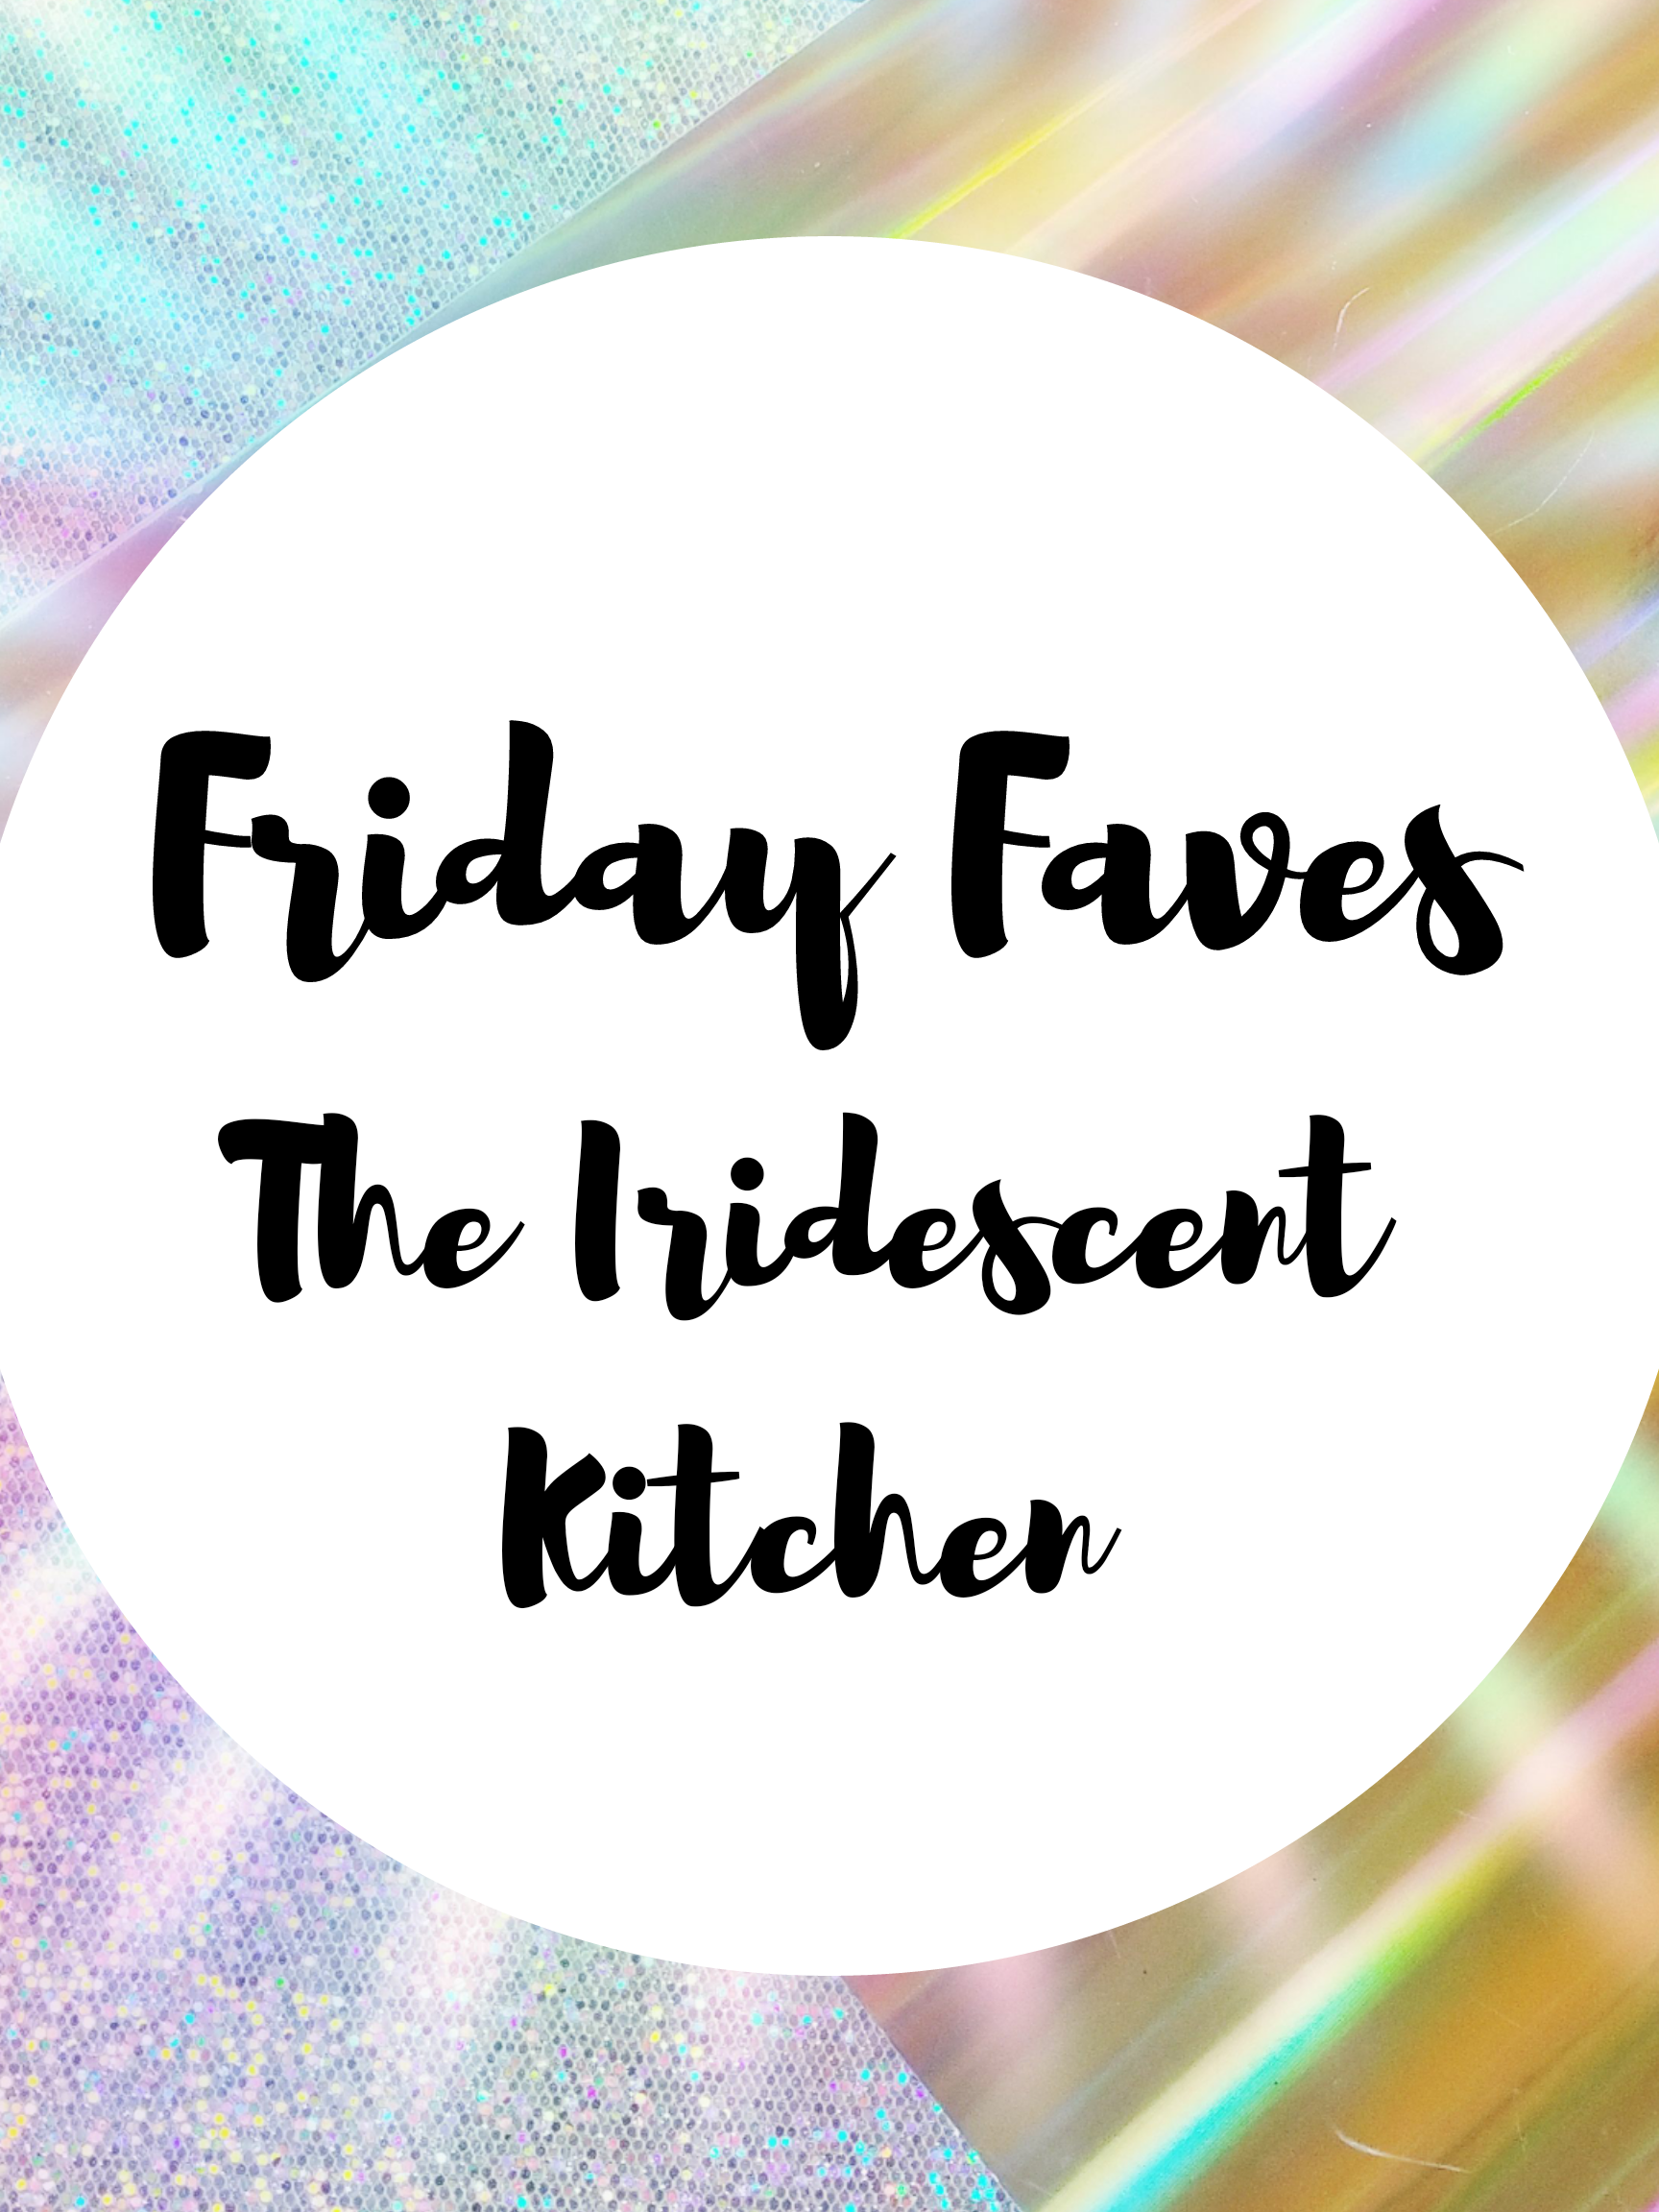 20180928 082347 00011972488412 - The Iridescent Kitchen - The Happy Shiny Rainbow Collection Part 2 - Friday Faves